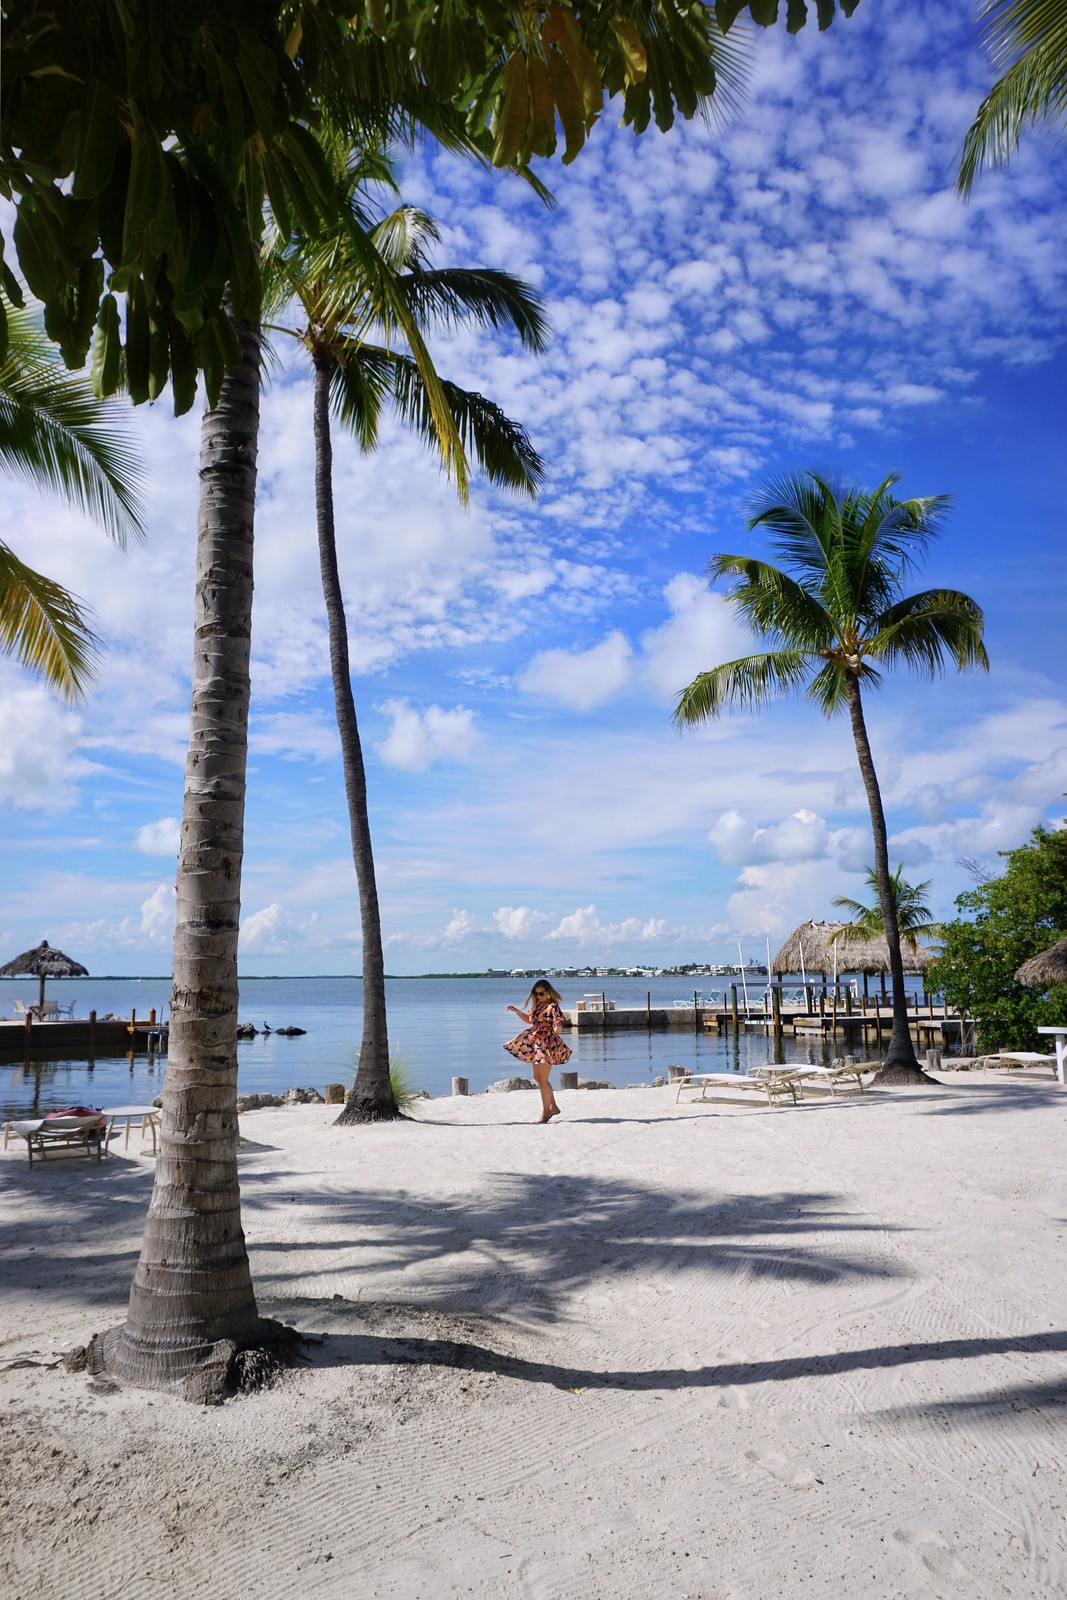 kona-kai-resort-ultimate-road-trip-5-days-florida-keys-itinerary-what-to-do-key-west-key-largo-islamorada-marathon-miami-vacation-guide